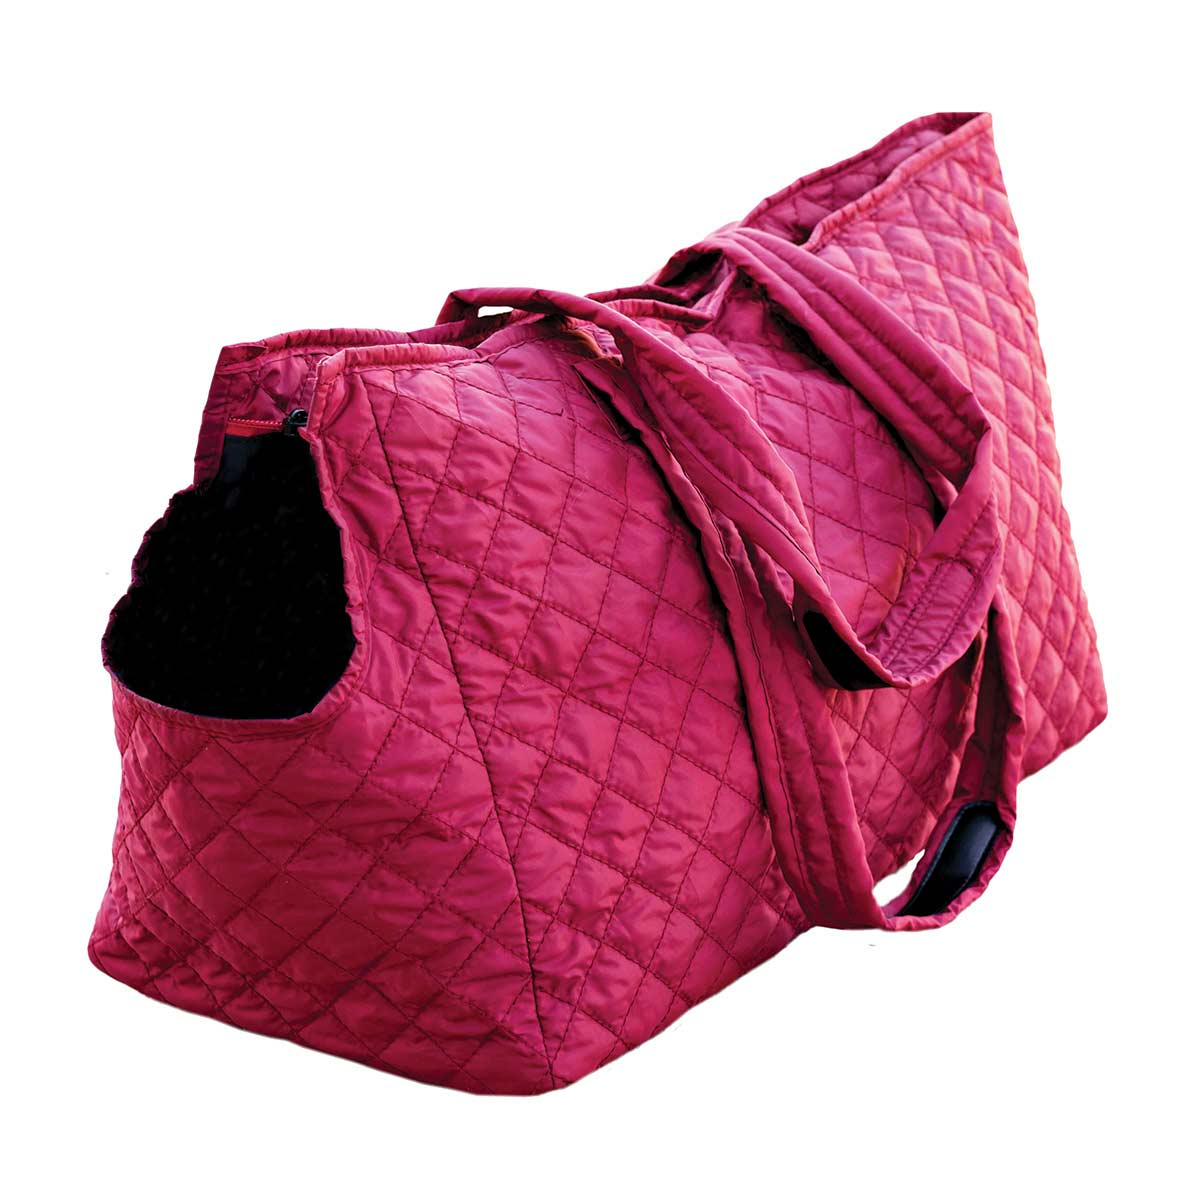 Ruby Multipet Pet Voyage Tacoma Quilted Tote available at Ryan's PEt Supplies